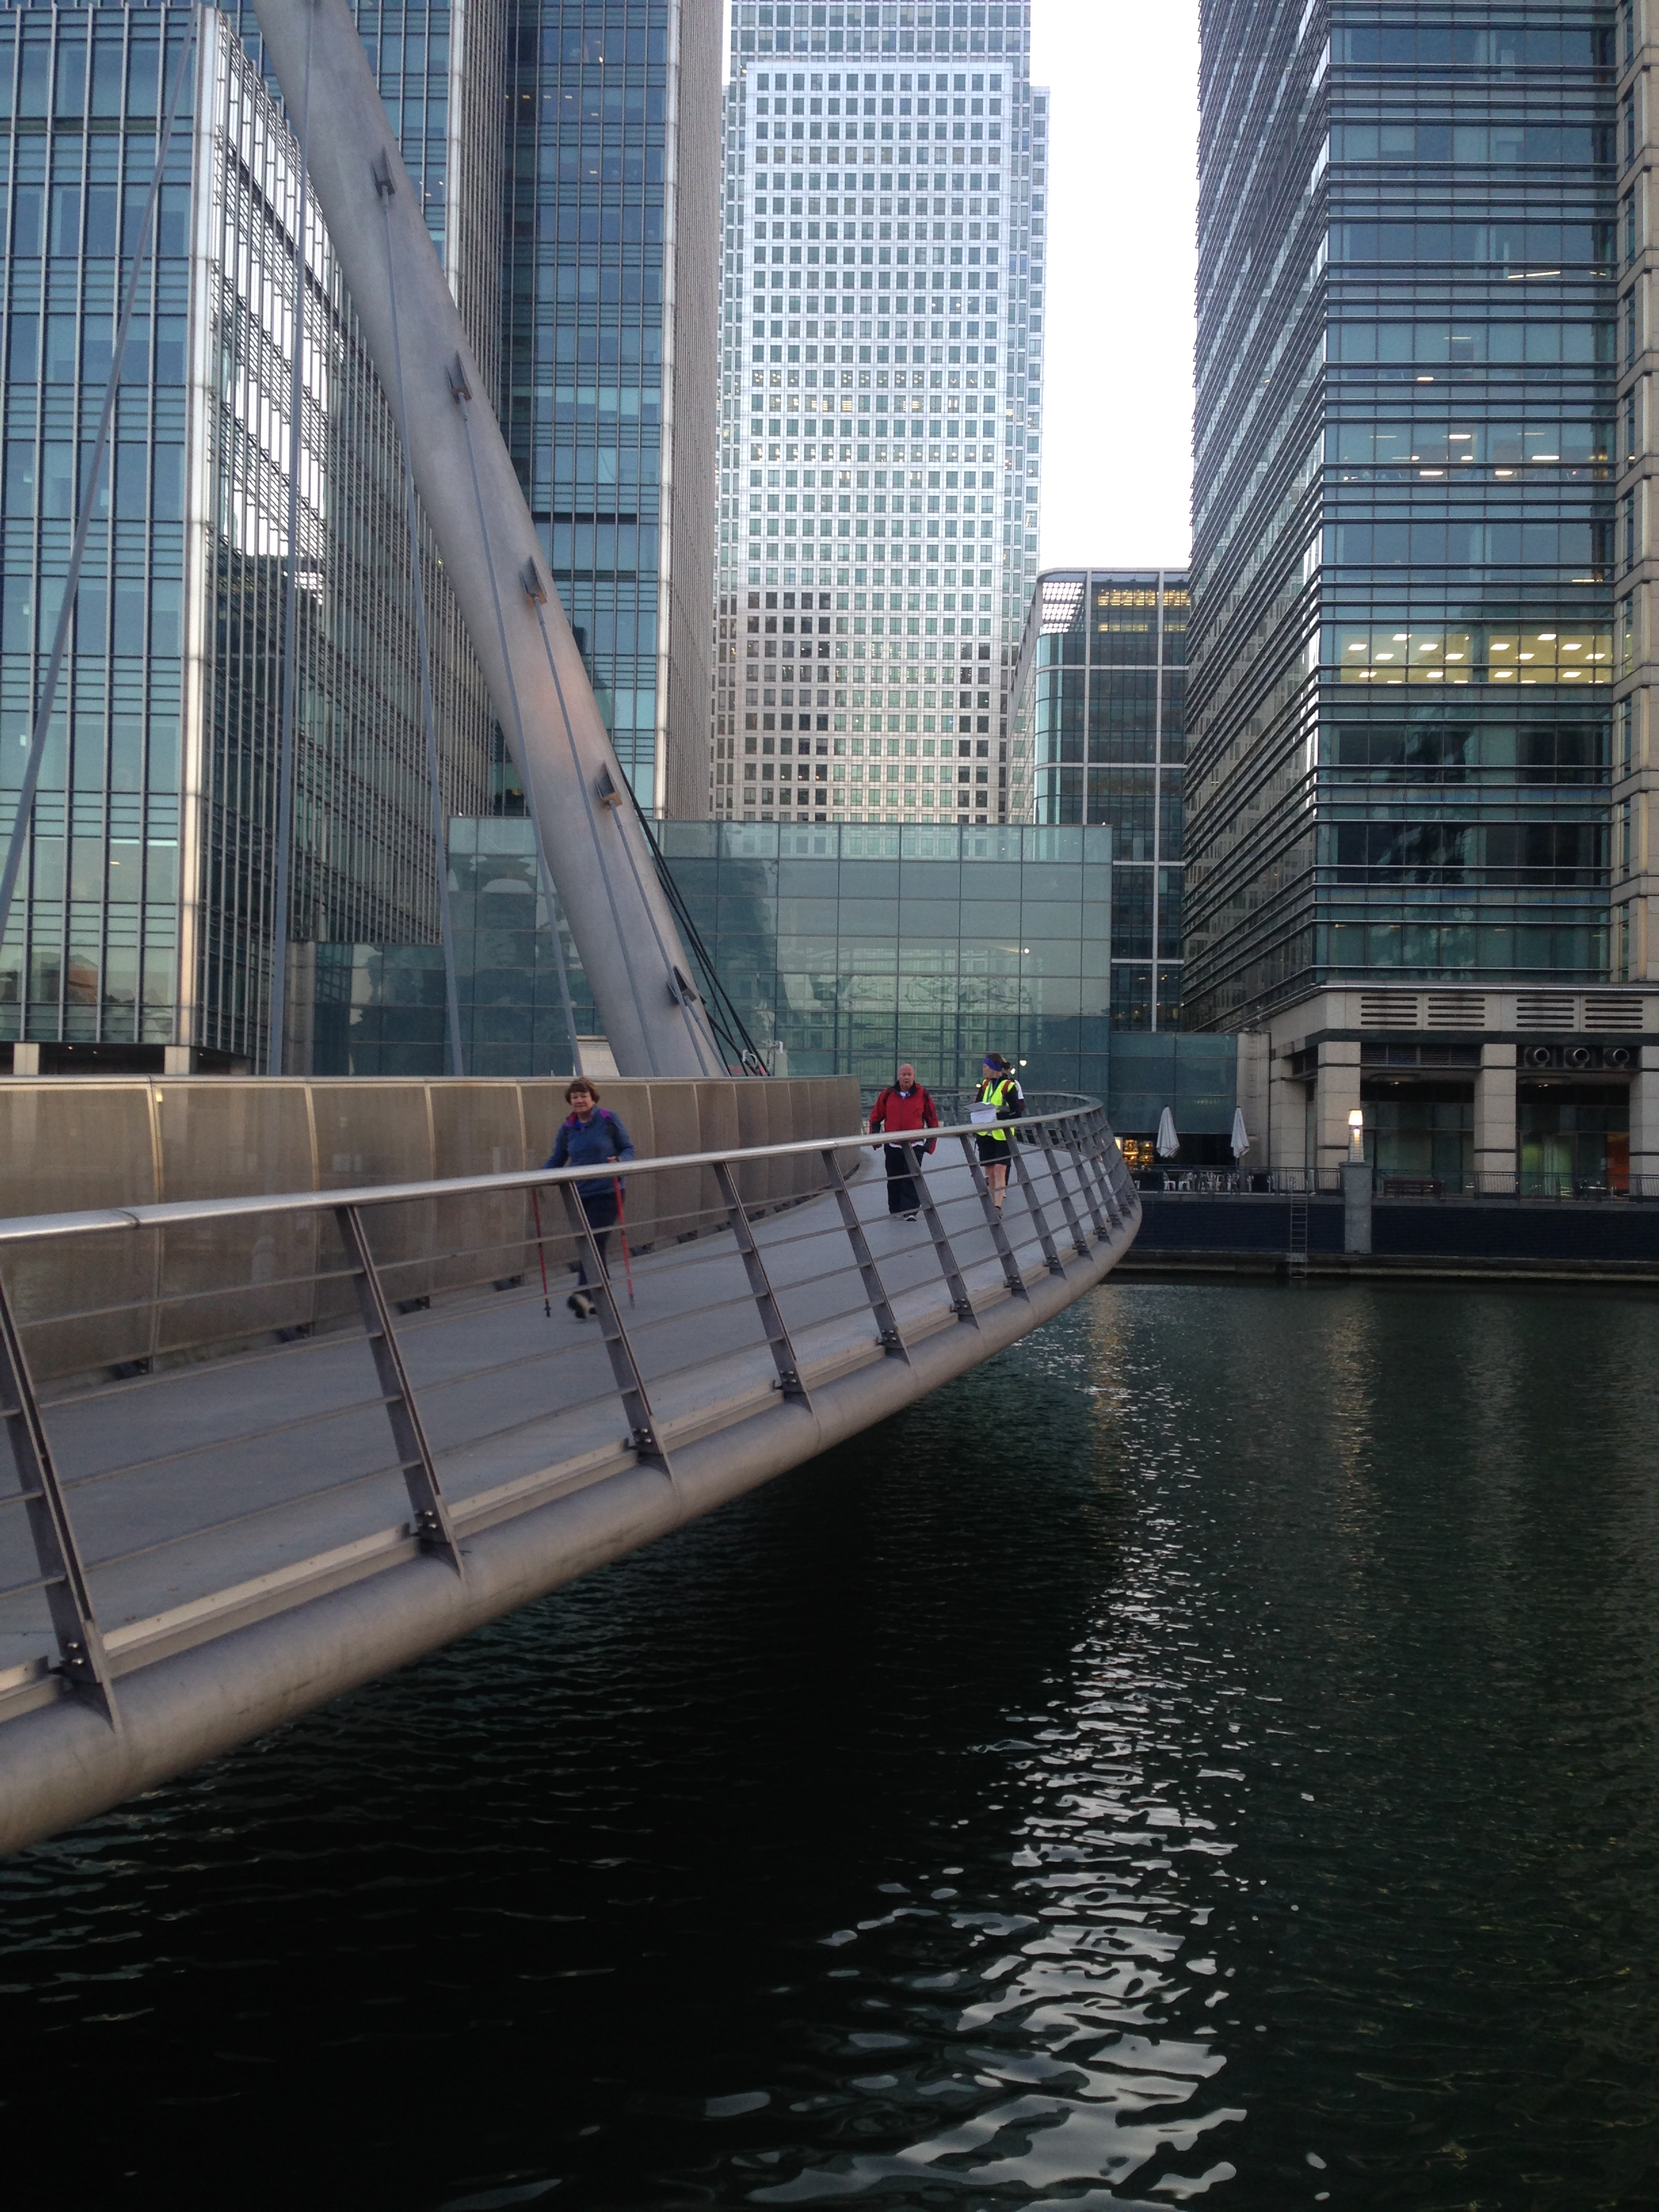 Mr McMinn walking in Canary Wharf